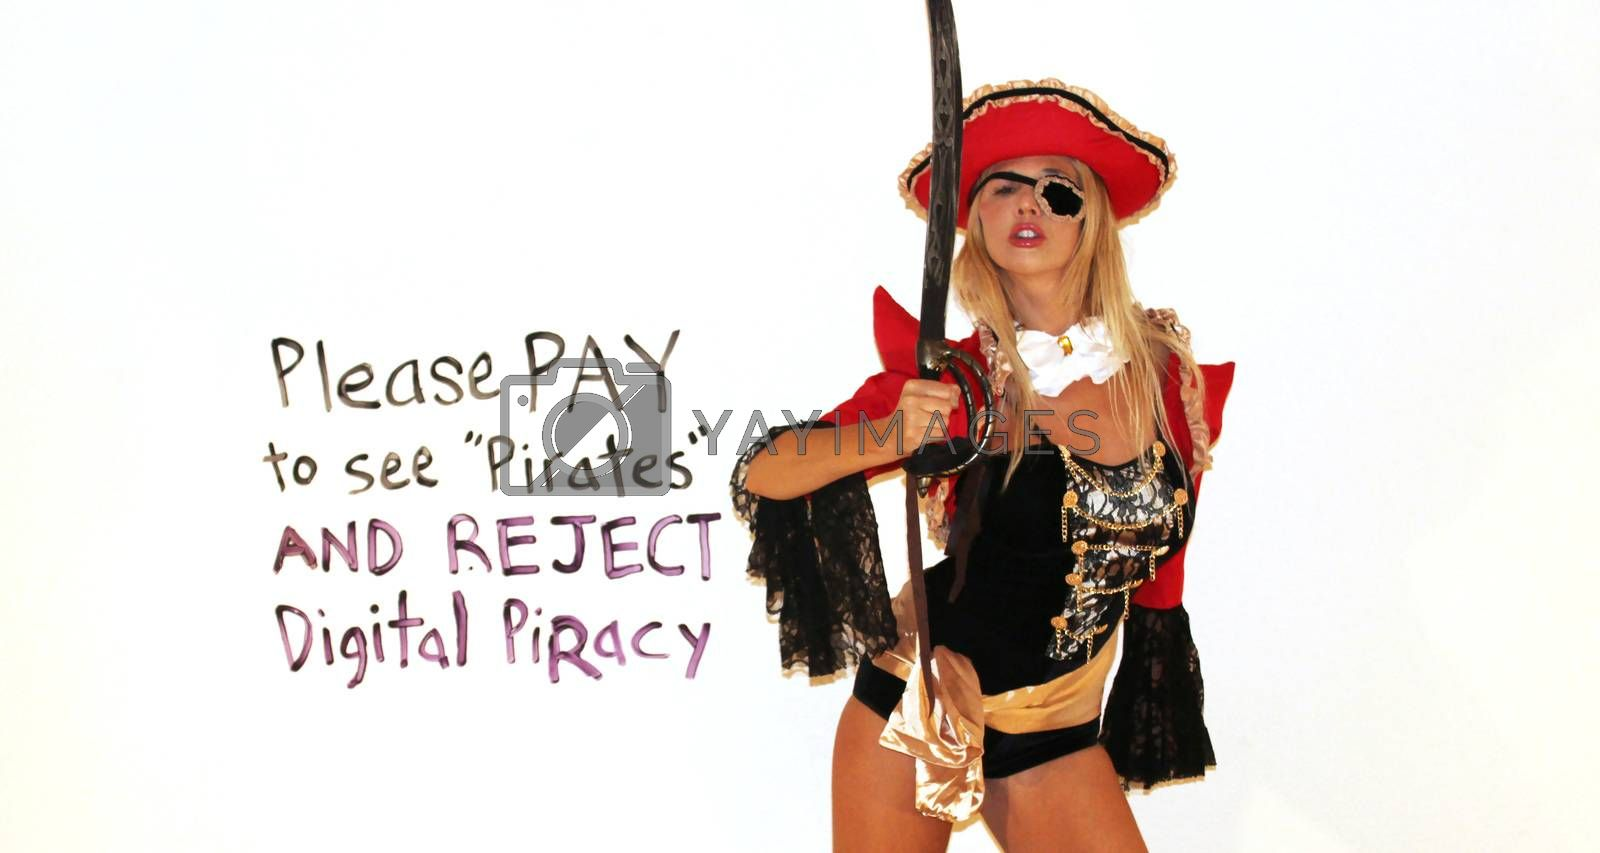 Nadeea Volianova the Russian Pop Star - a lifelong Johnny Depp fan - urges people to pay to see the new Pirates movie and ignore the pirated copy that hackers released, Beverly Hills, CA 05-25-17